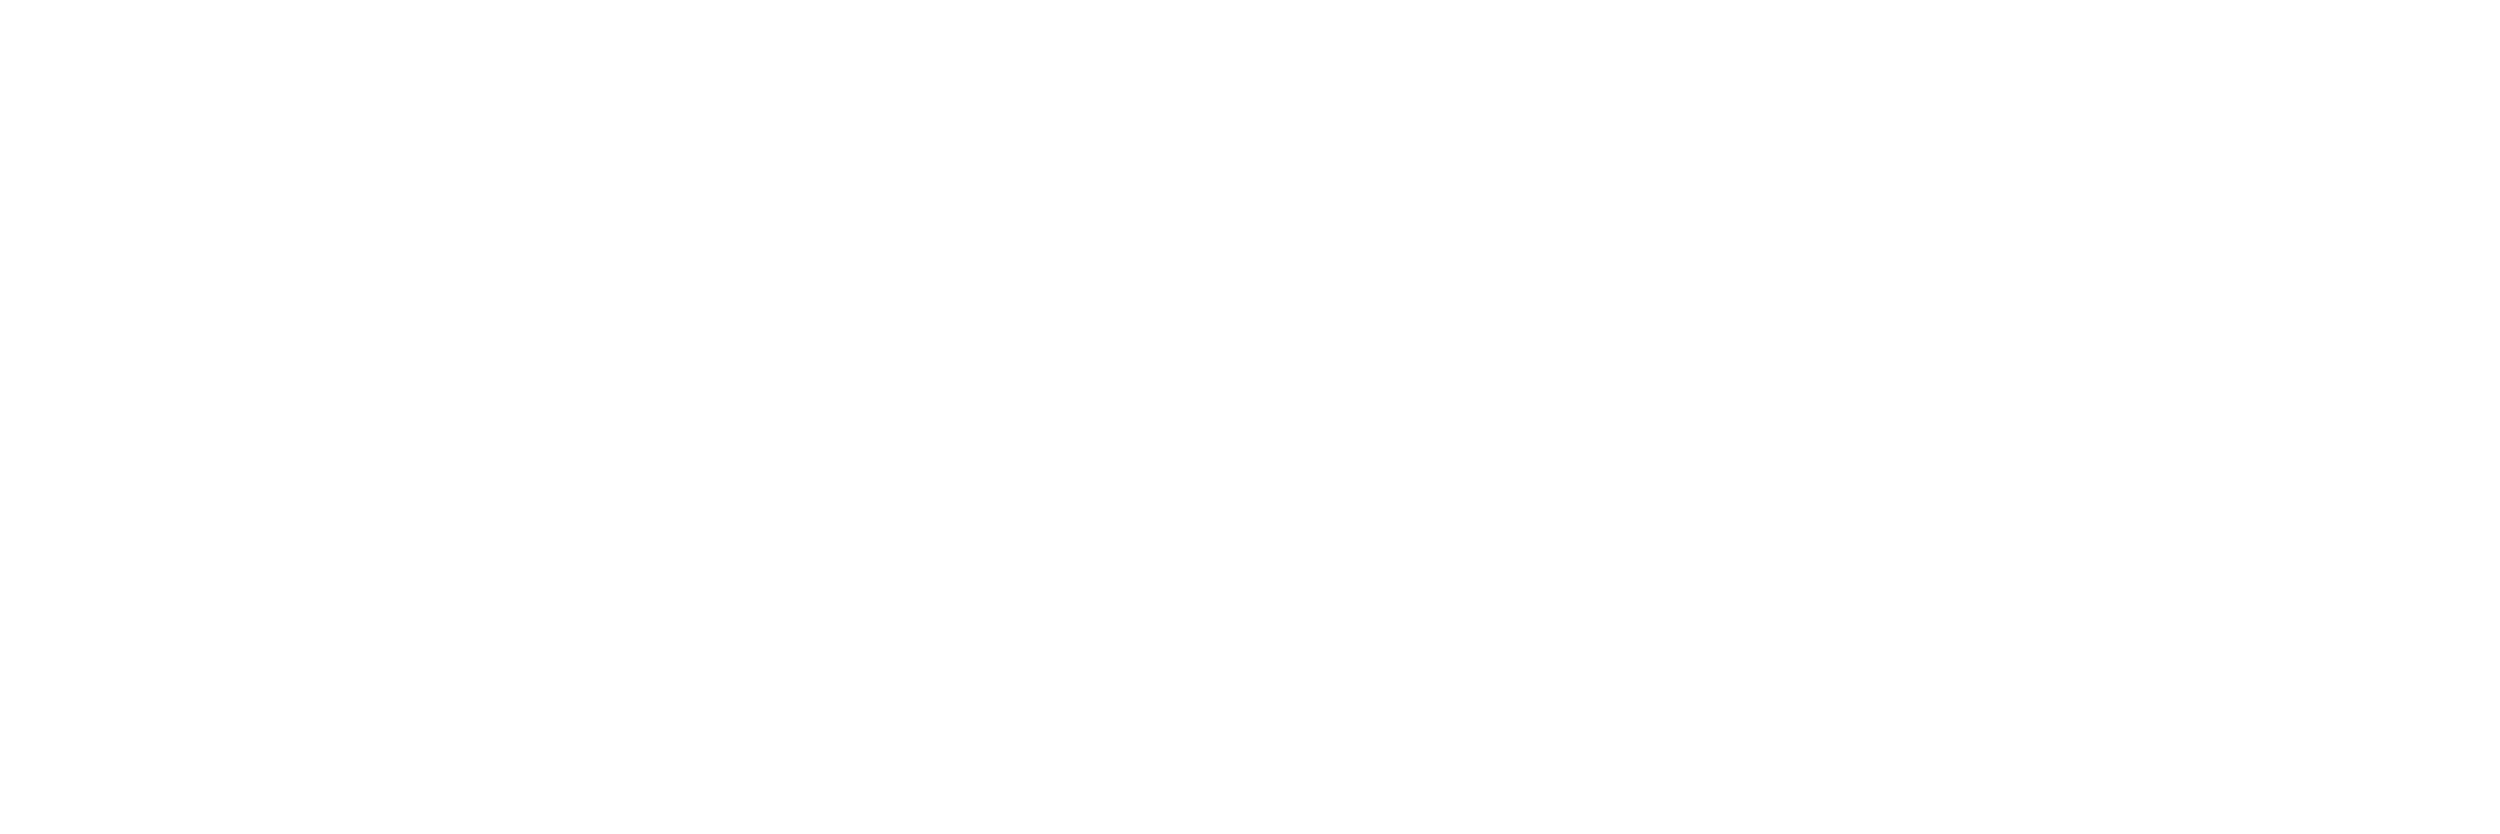 Umeed Ki Kiran Clinic